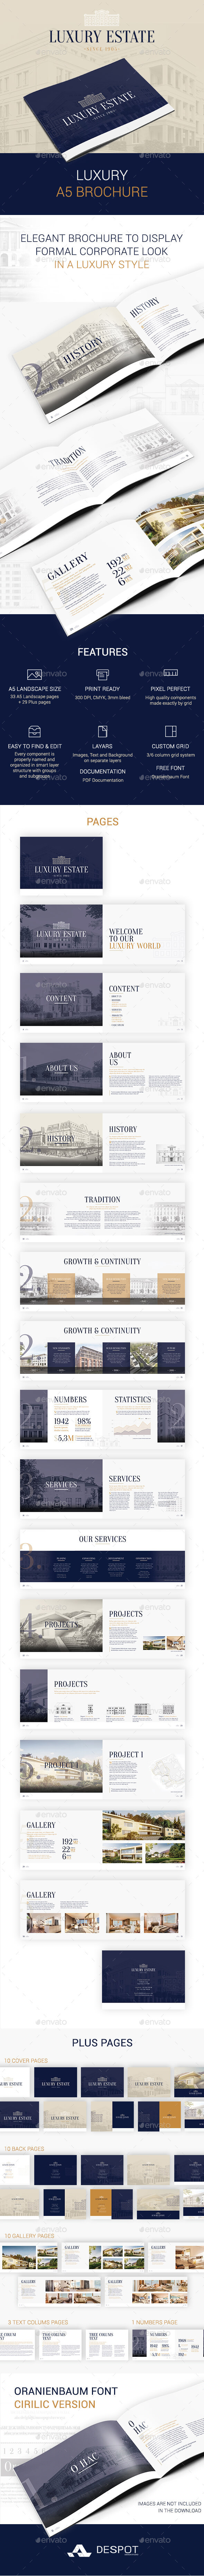 GraphicRiver Luxury A5 Brochure 11209285